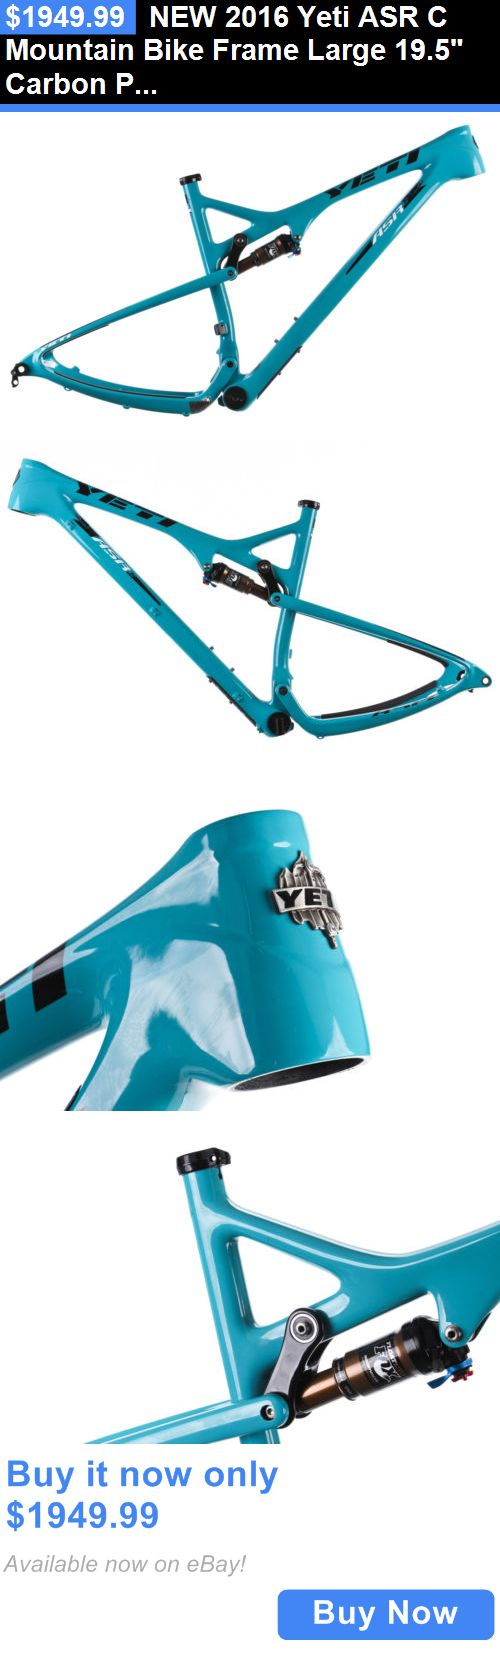 bicycle parts: New 2016 Yeti Asr C Mountain Bike Frame Large 19.5 Carbon Pf30 Fox Float 12X142 BUY IT NOW ONLY: $1949.99